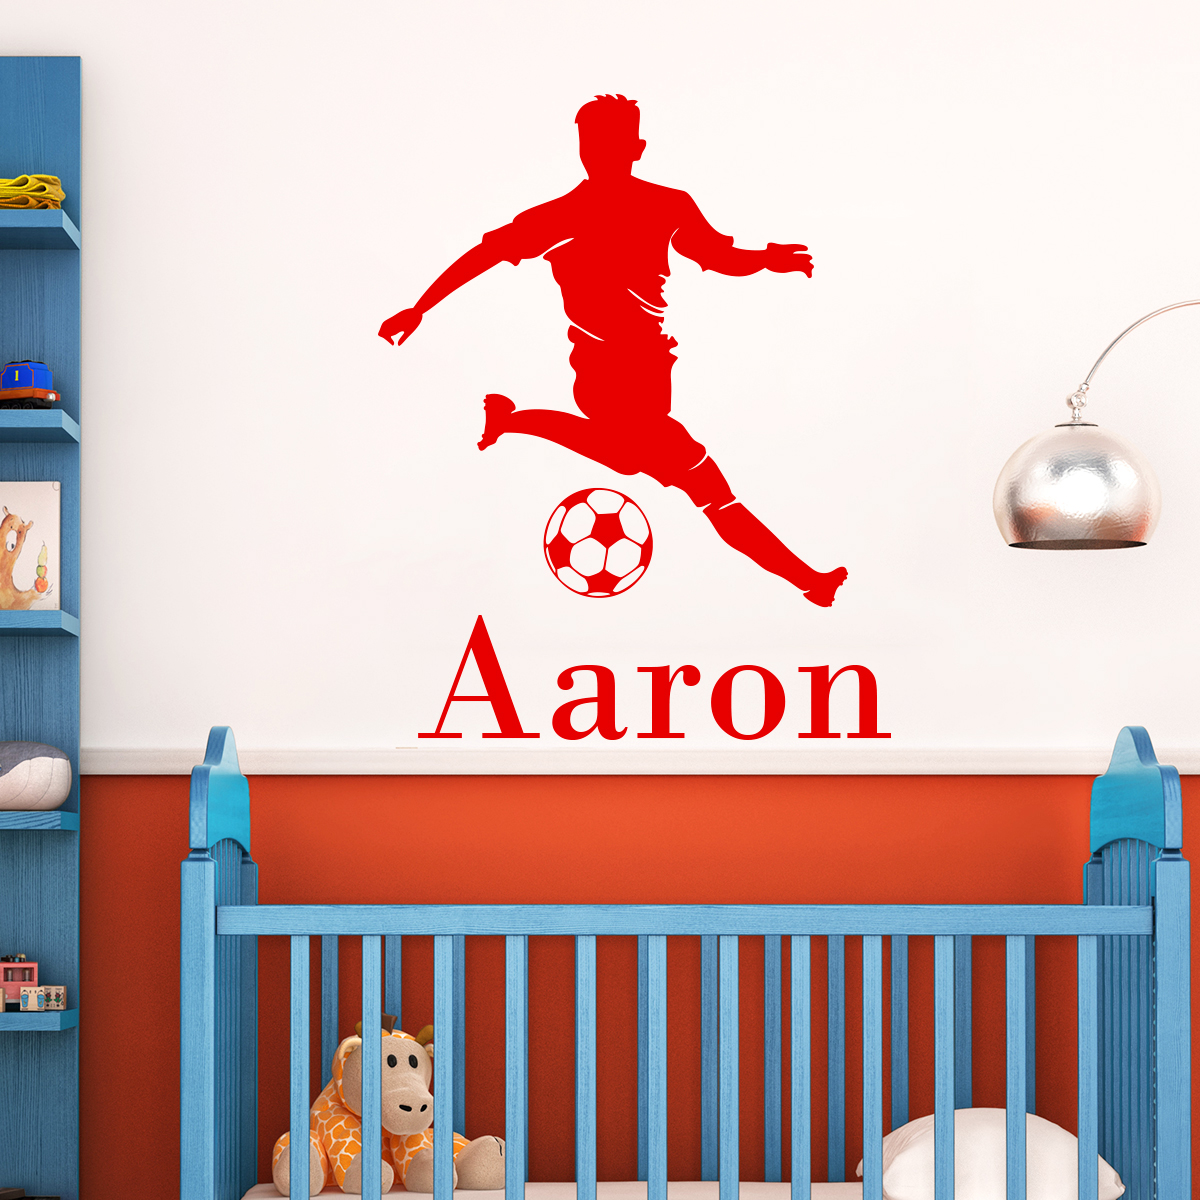 sticker pr nom personnalis footballeur dribblant sports et football football ambiance sticker. Black Bedroom Furniture Sets. Home Design Ideas